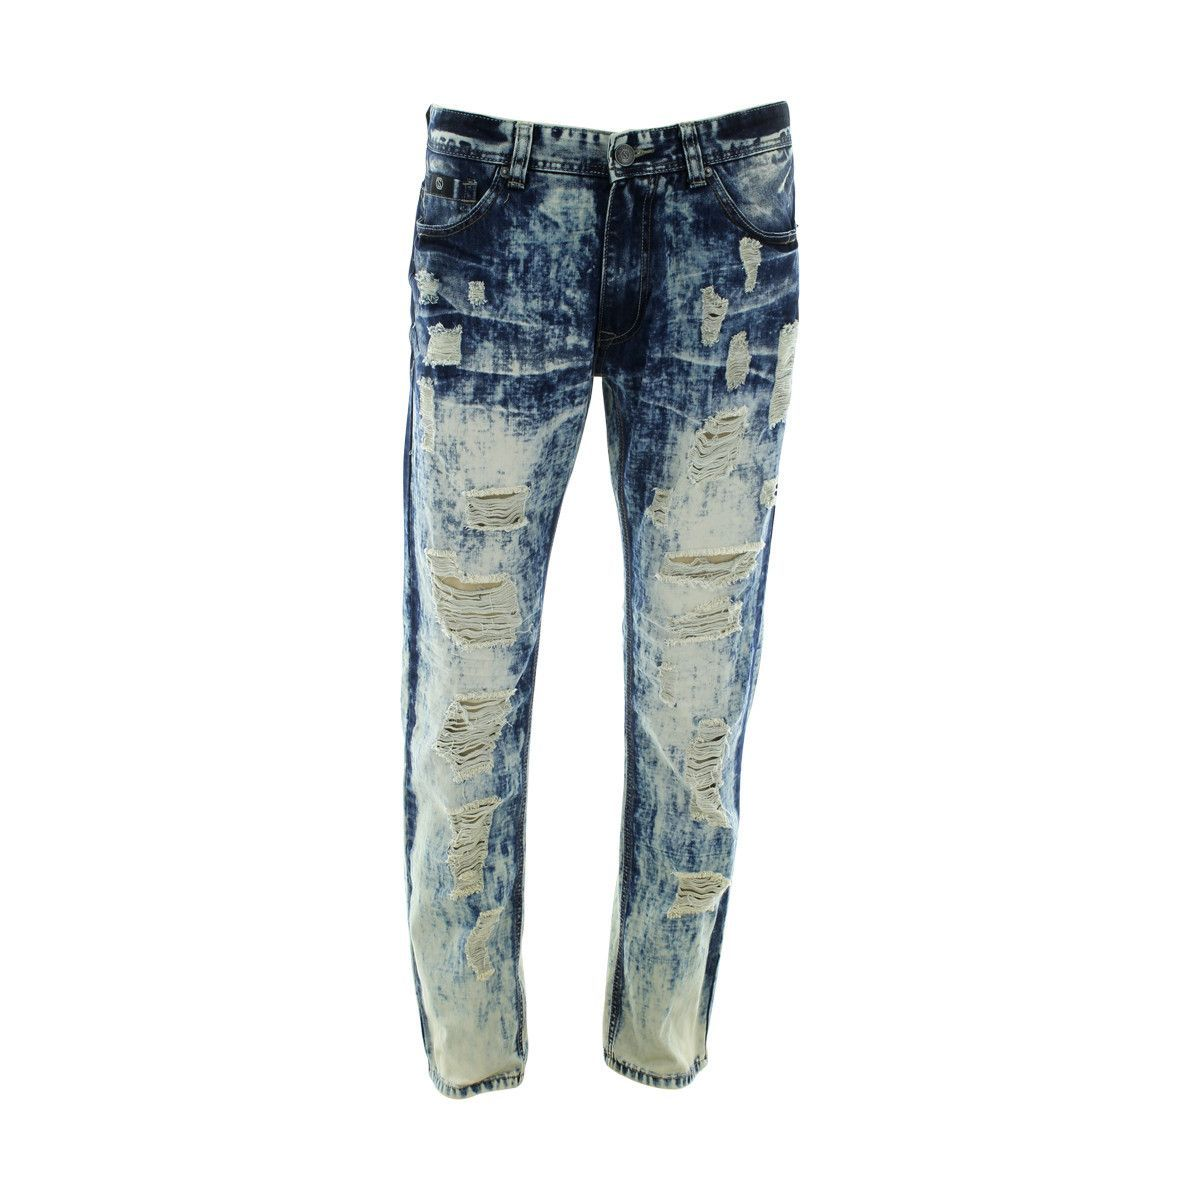 Switch Remarkable - Men's Rip And Repair Washed Jeans - Vintage